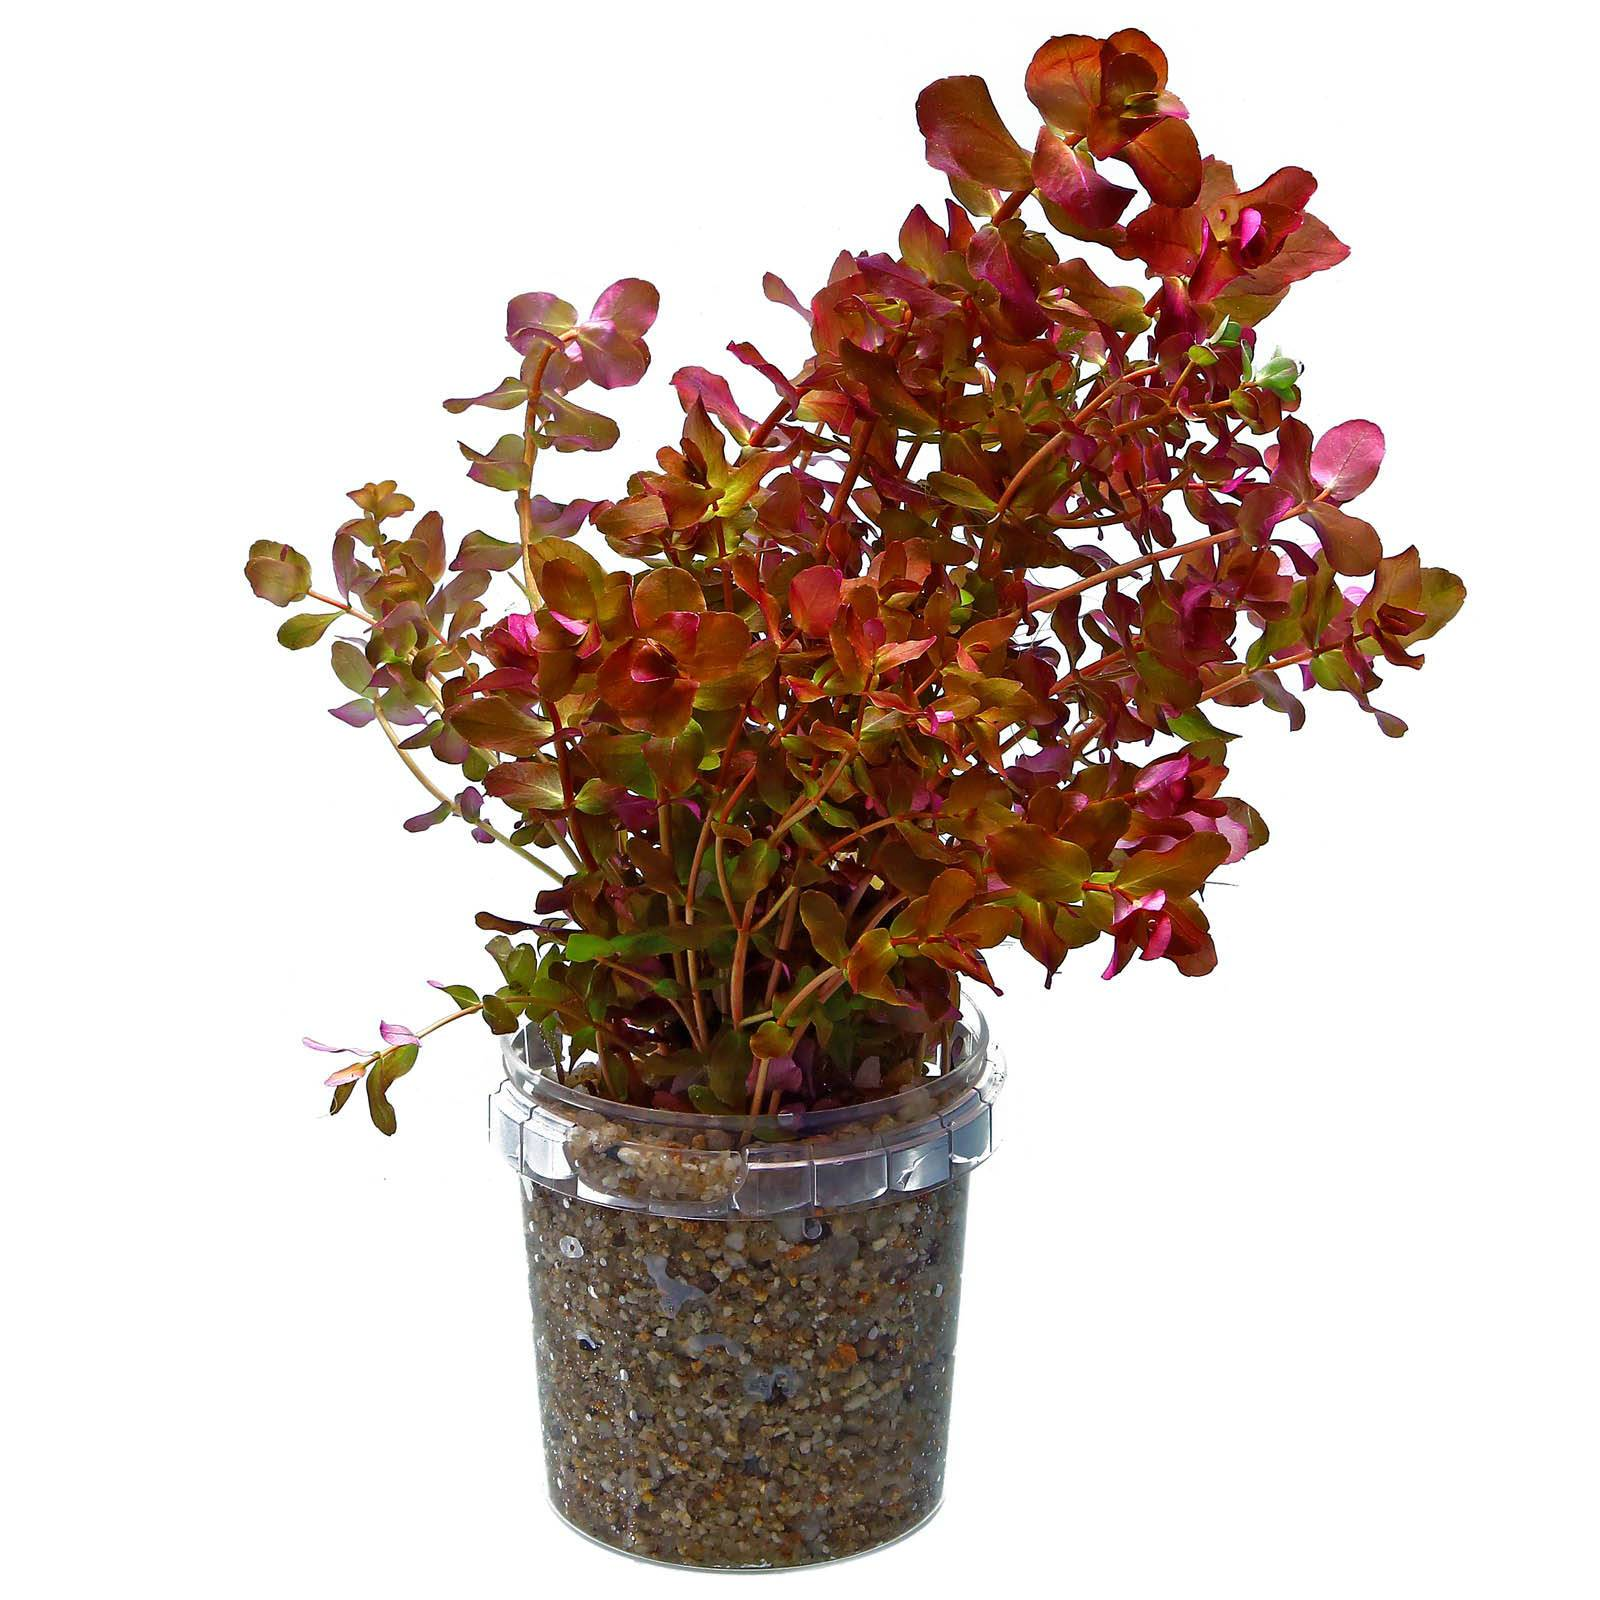 rotala macrandra quotgreenquot quotwavyquot